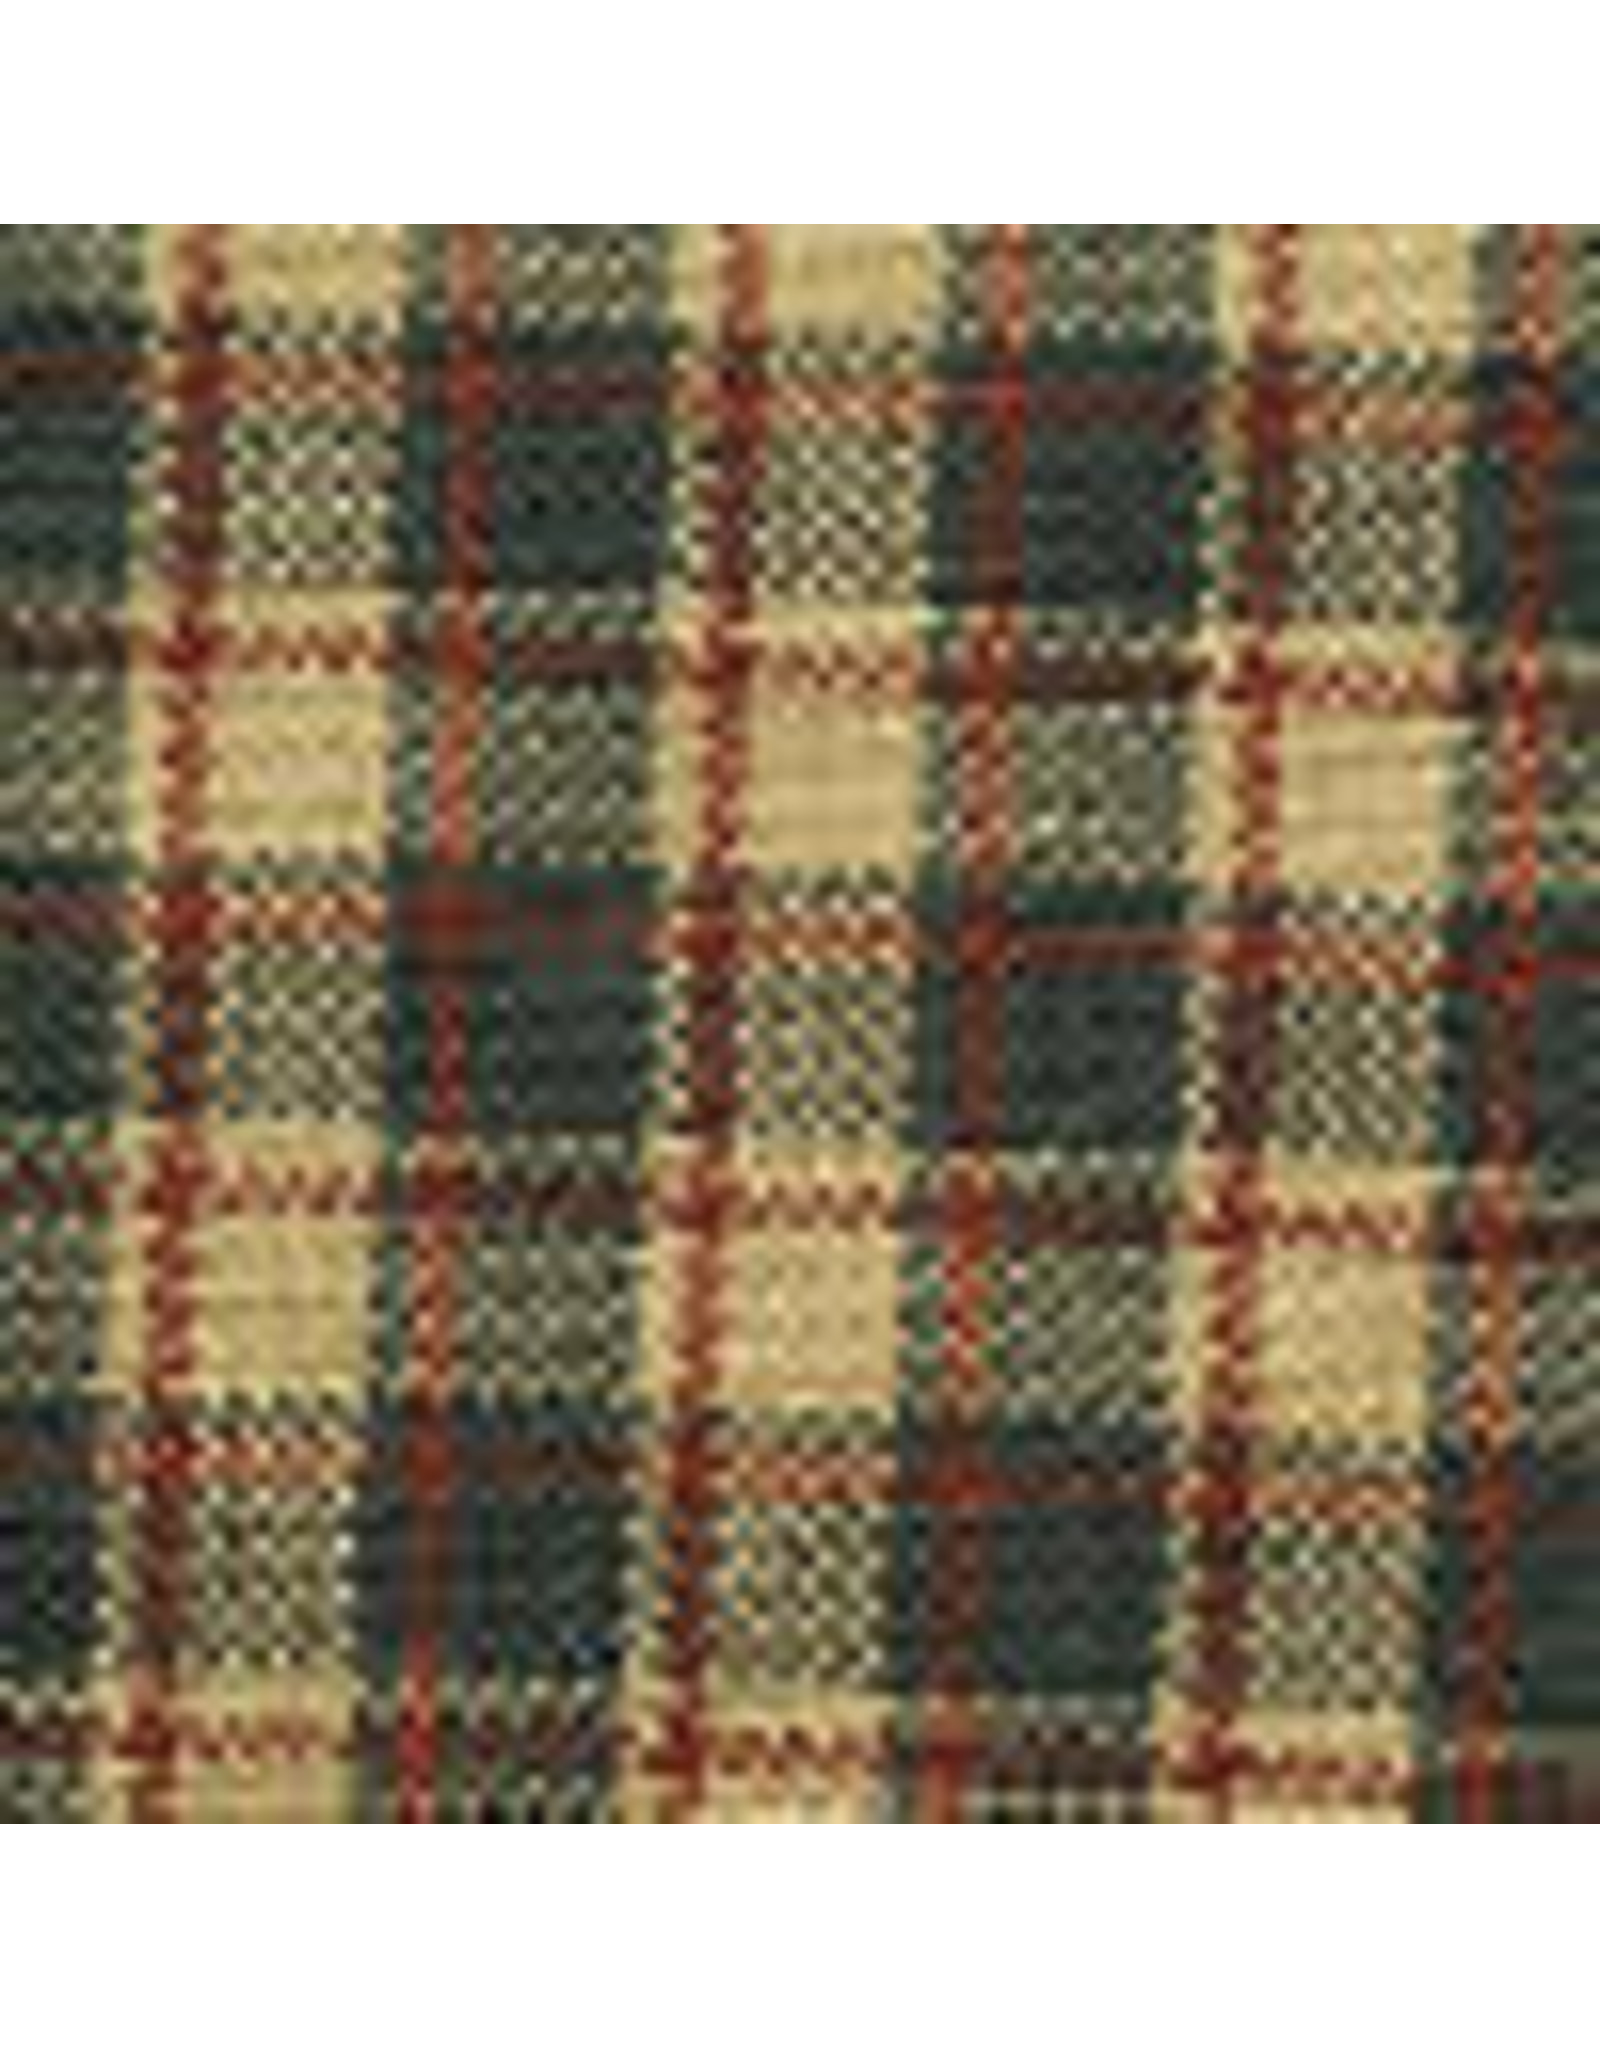 Yd. Green and Tan Tri-color With Stripe Fabric #45